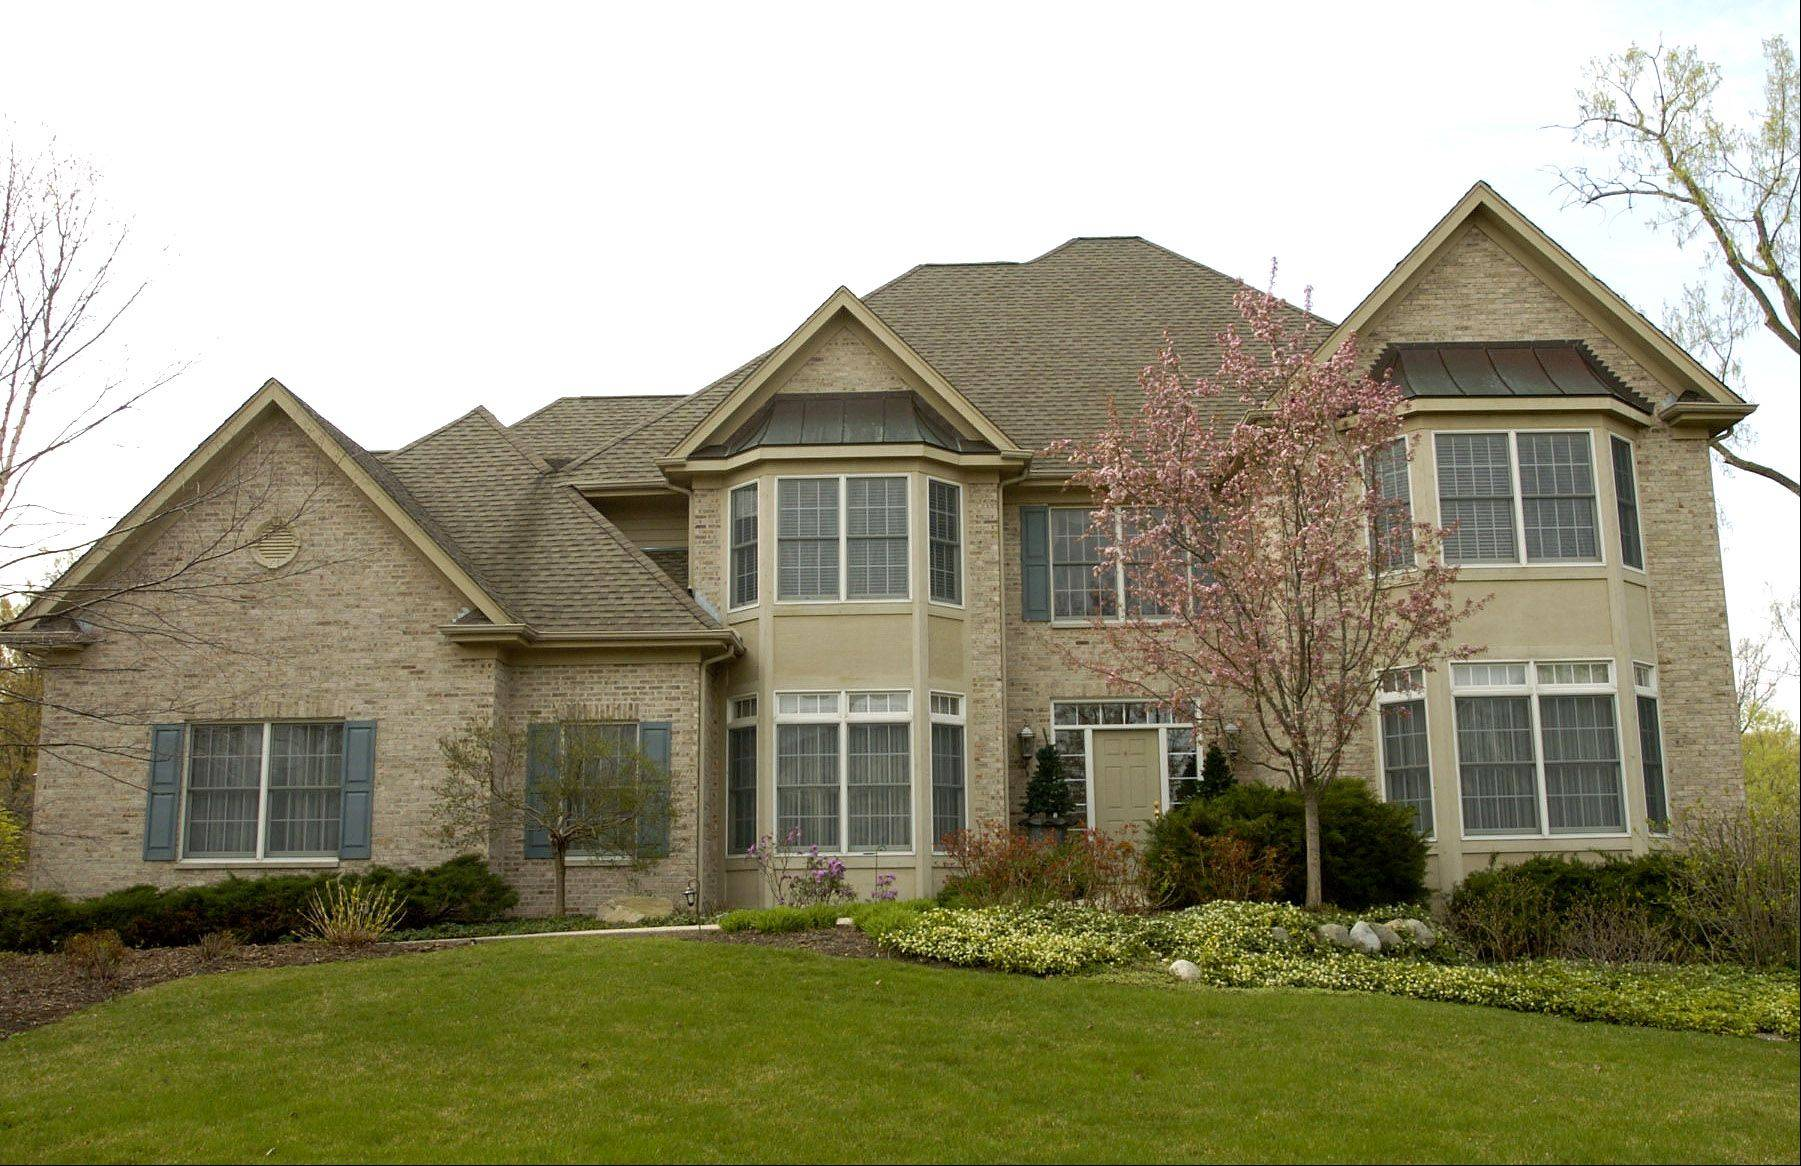 Larger, custom-built homes are found in The Ponds of Kildeer subdivision.